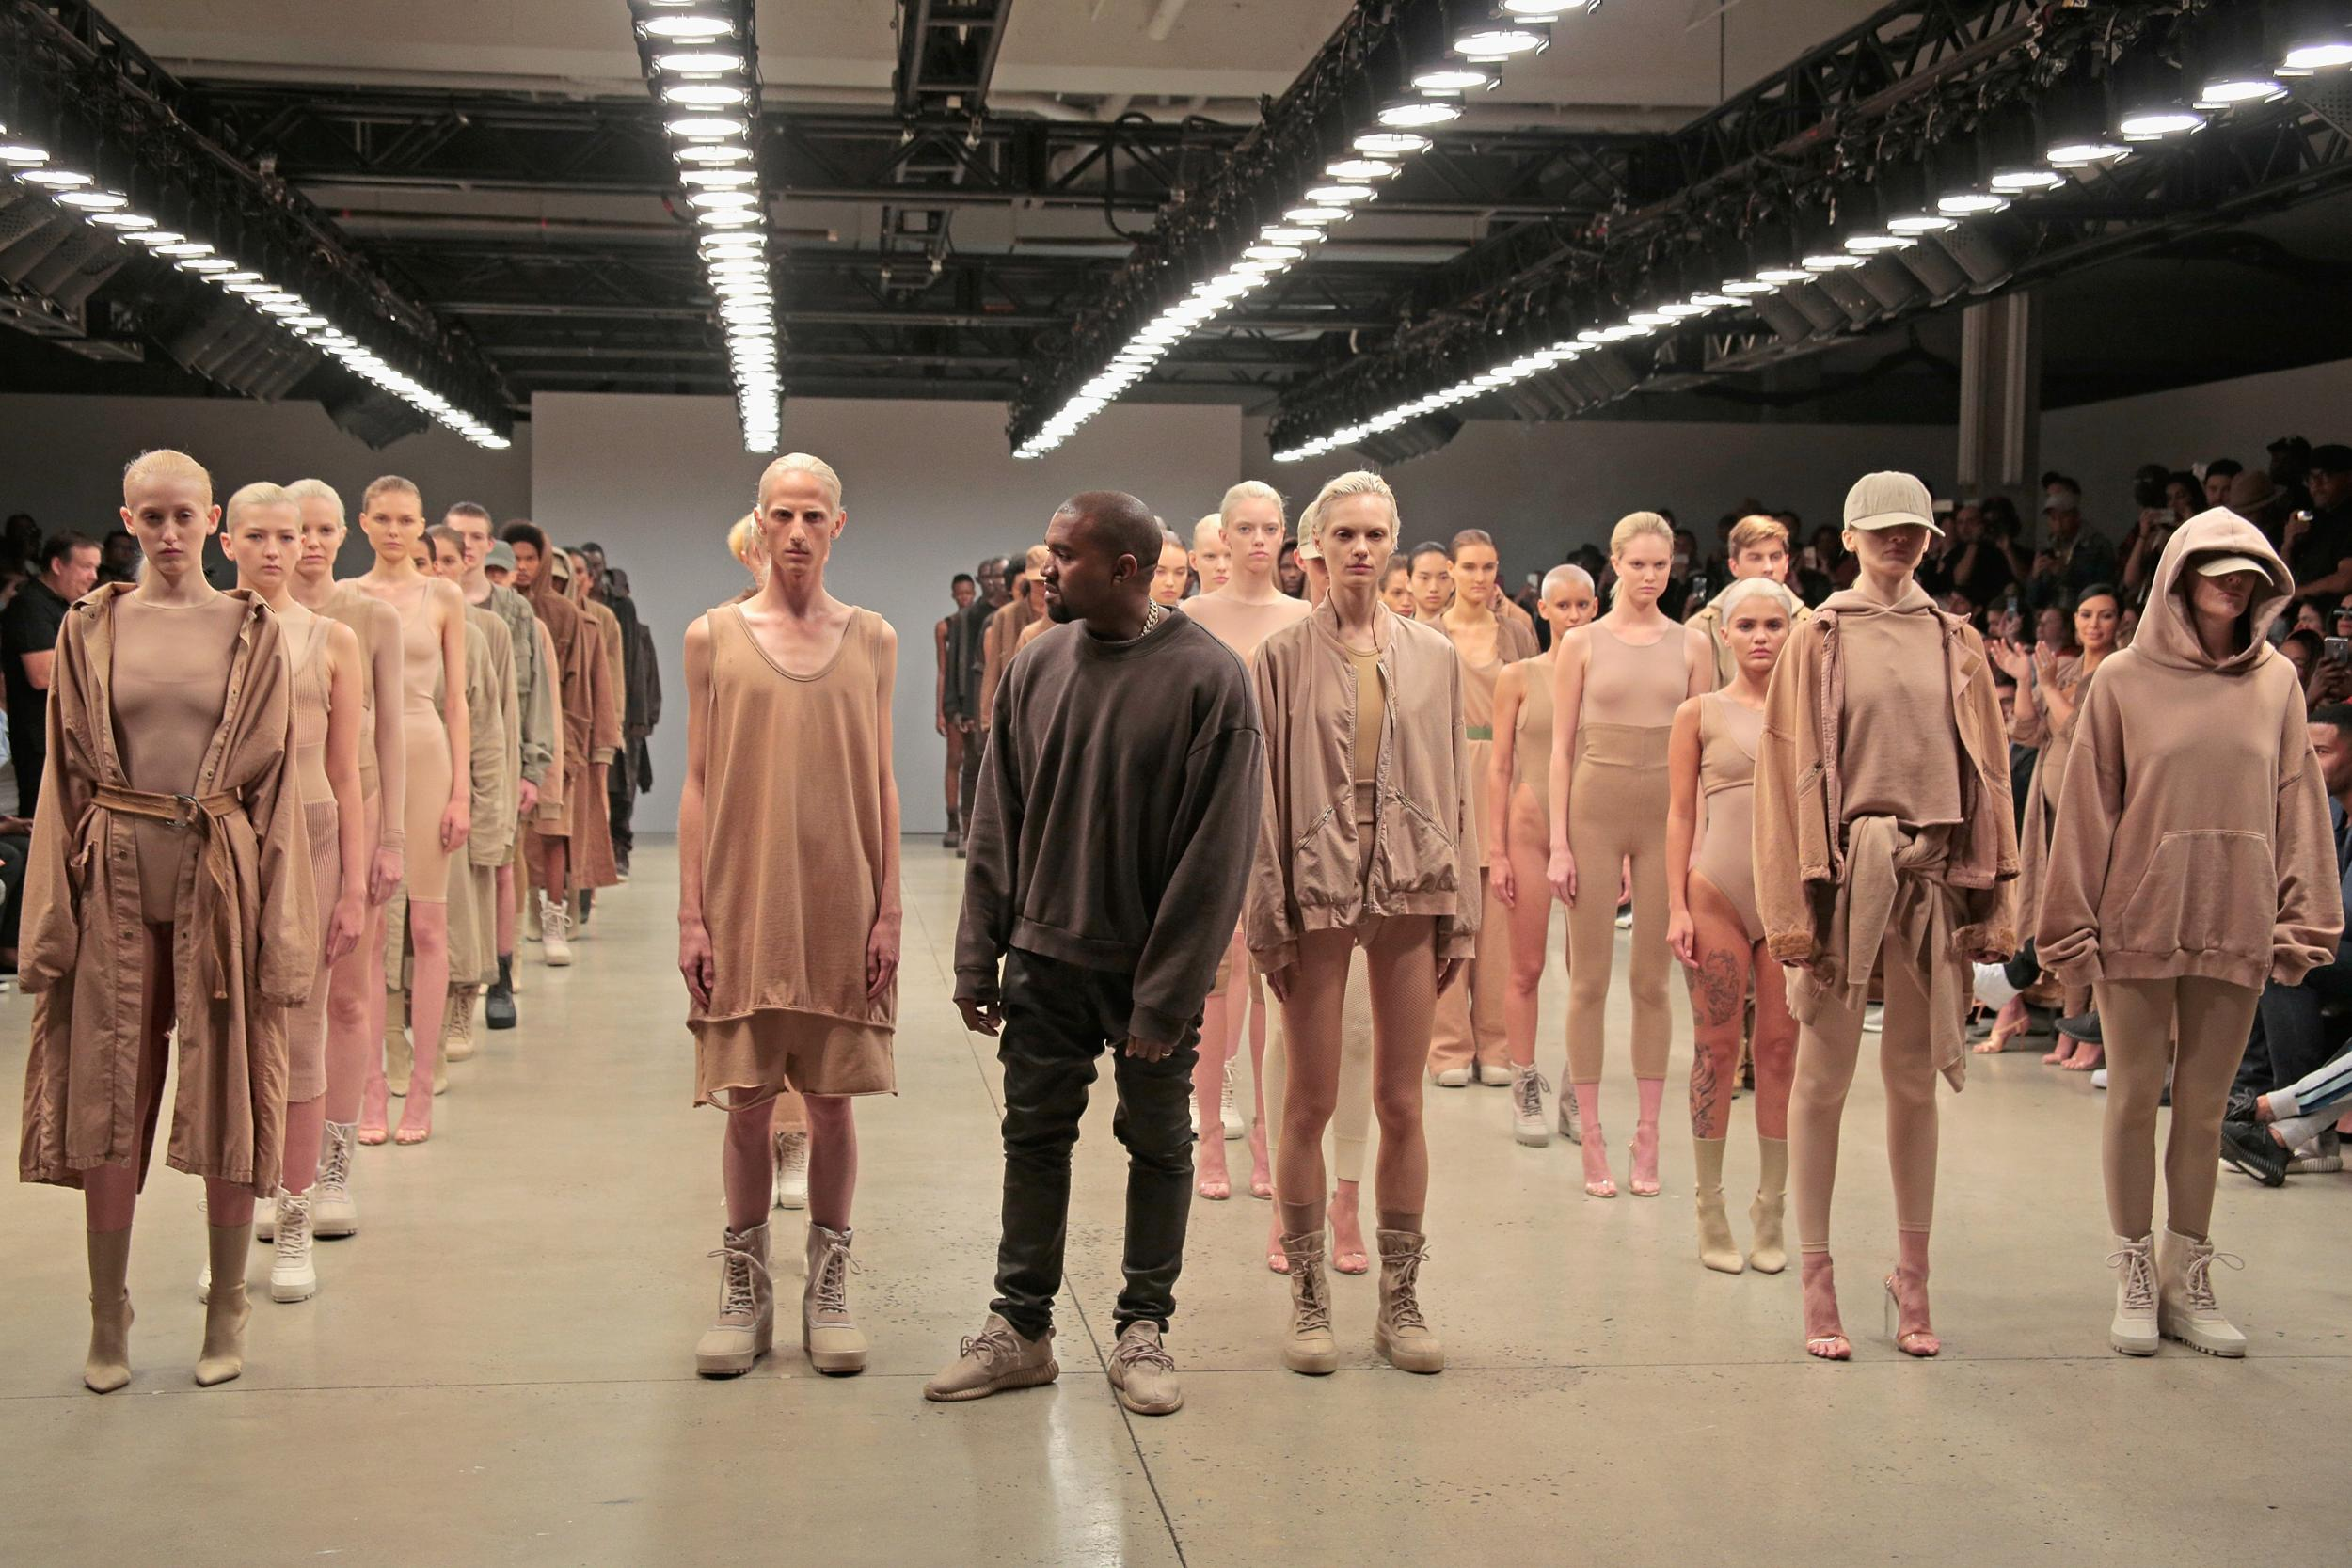 319821e95 Kanye West releases teaser images of Yeezy Season 3 ahead of New York  Fashion Week show